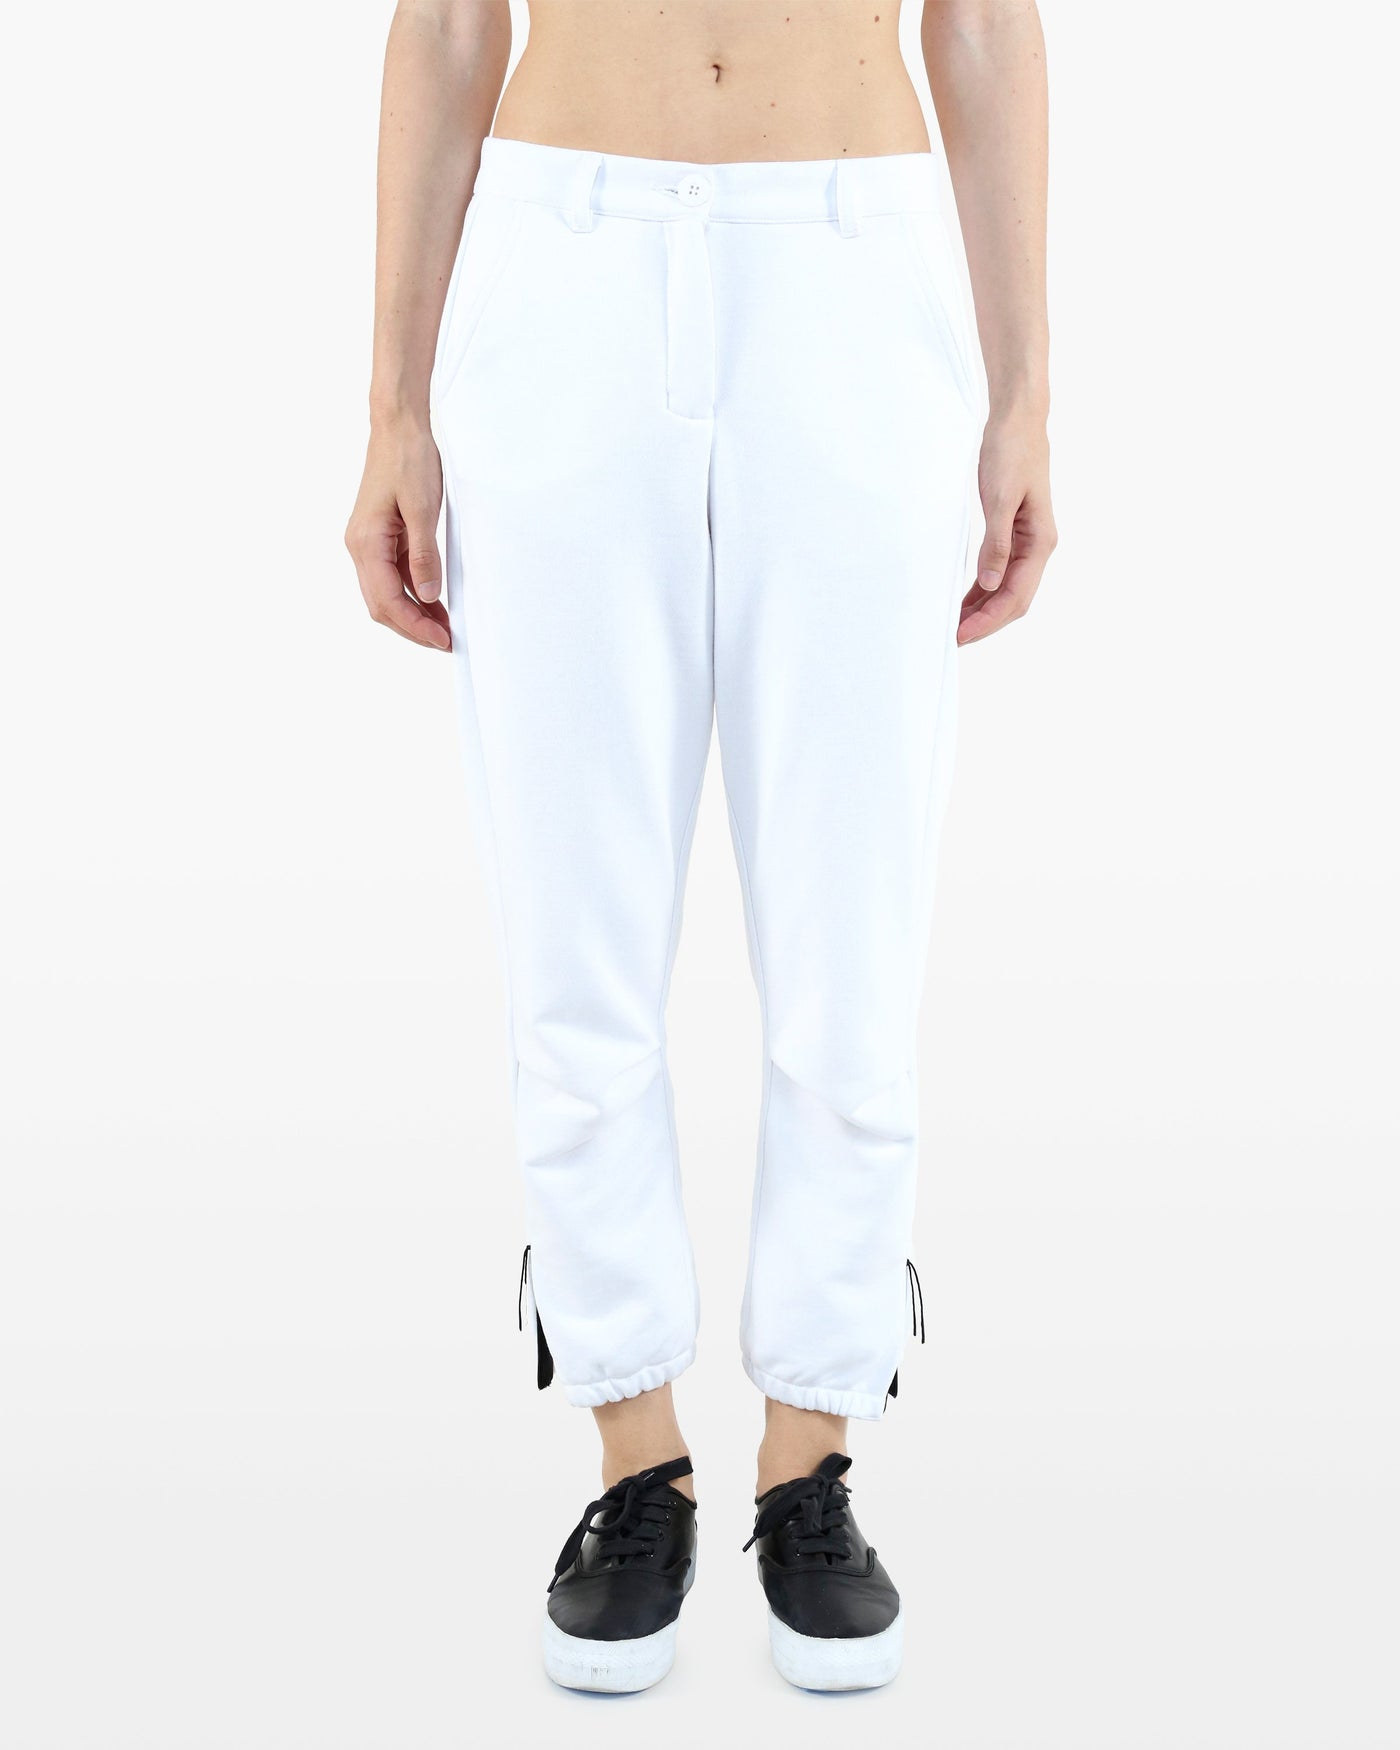 Lovelace Pant DFL in white